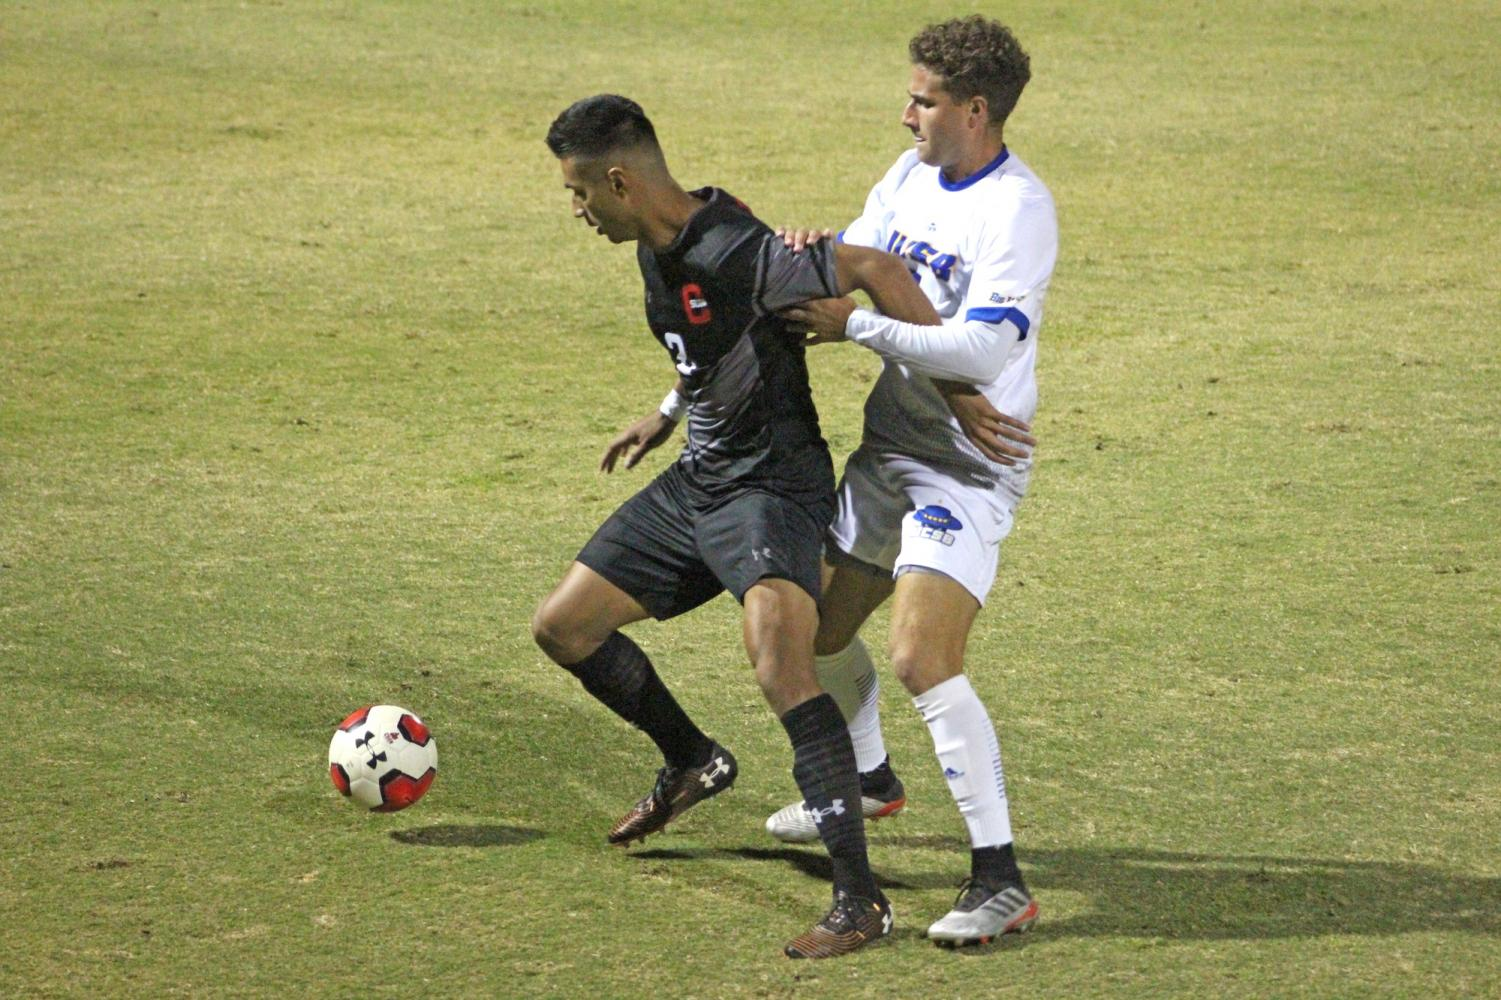 CSUN senior defender Alex Lara defends the ball from UCSB's offense on Oct. 26. The Matadors successfully held off the #3 team to secure a draw. Photo credit: Aaron Aguilera